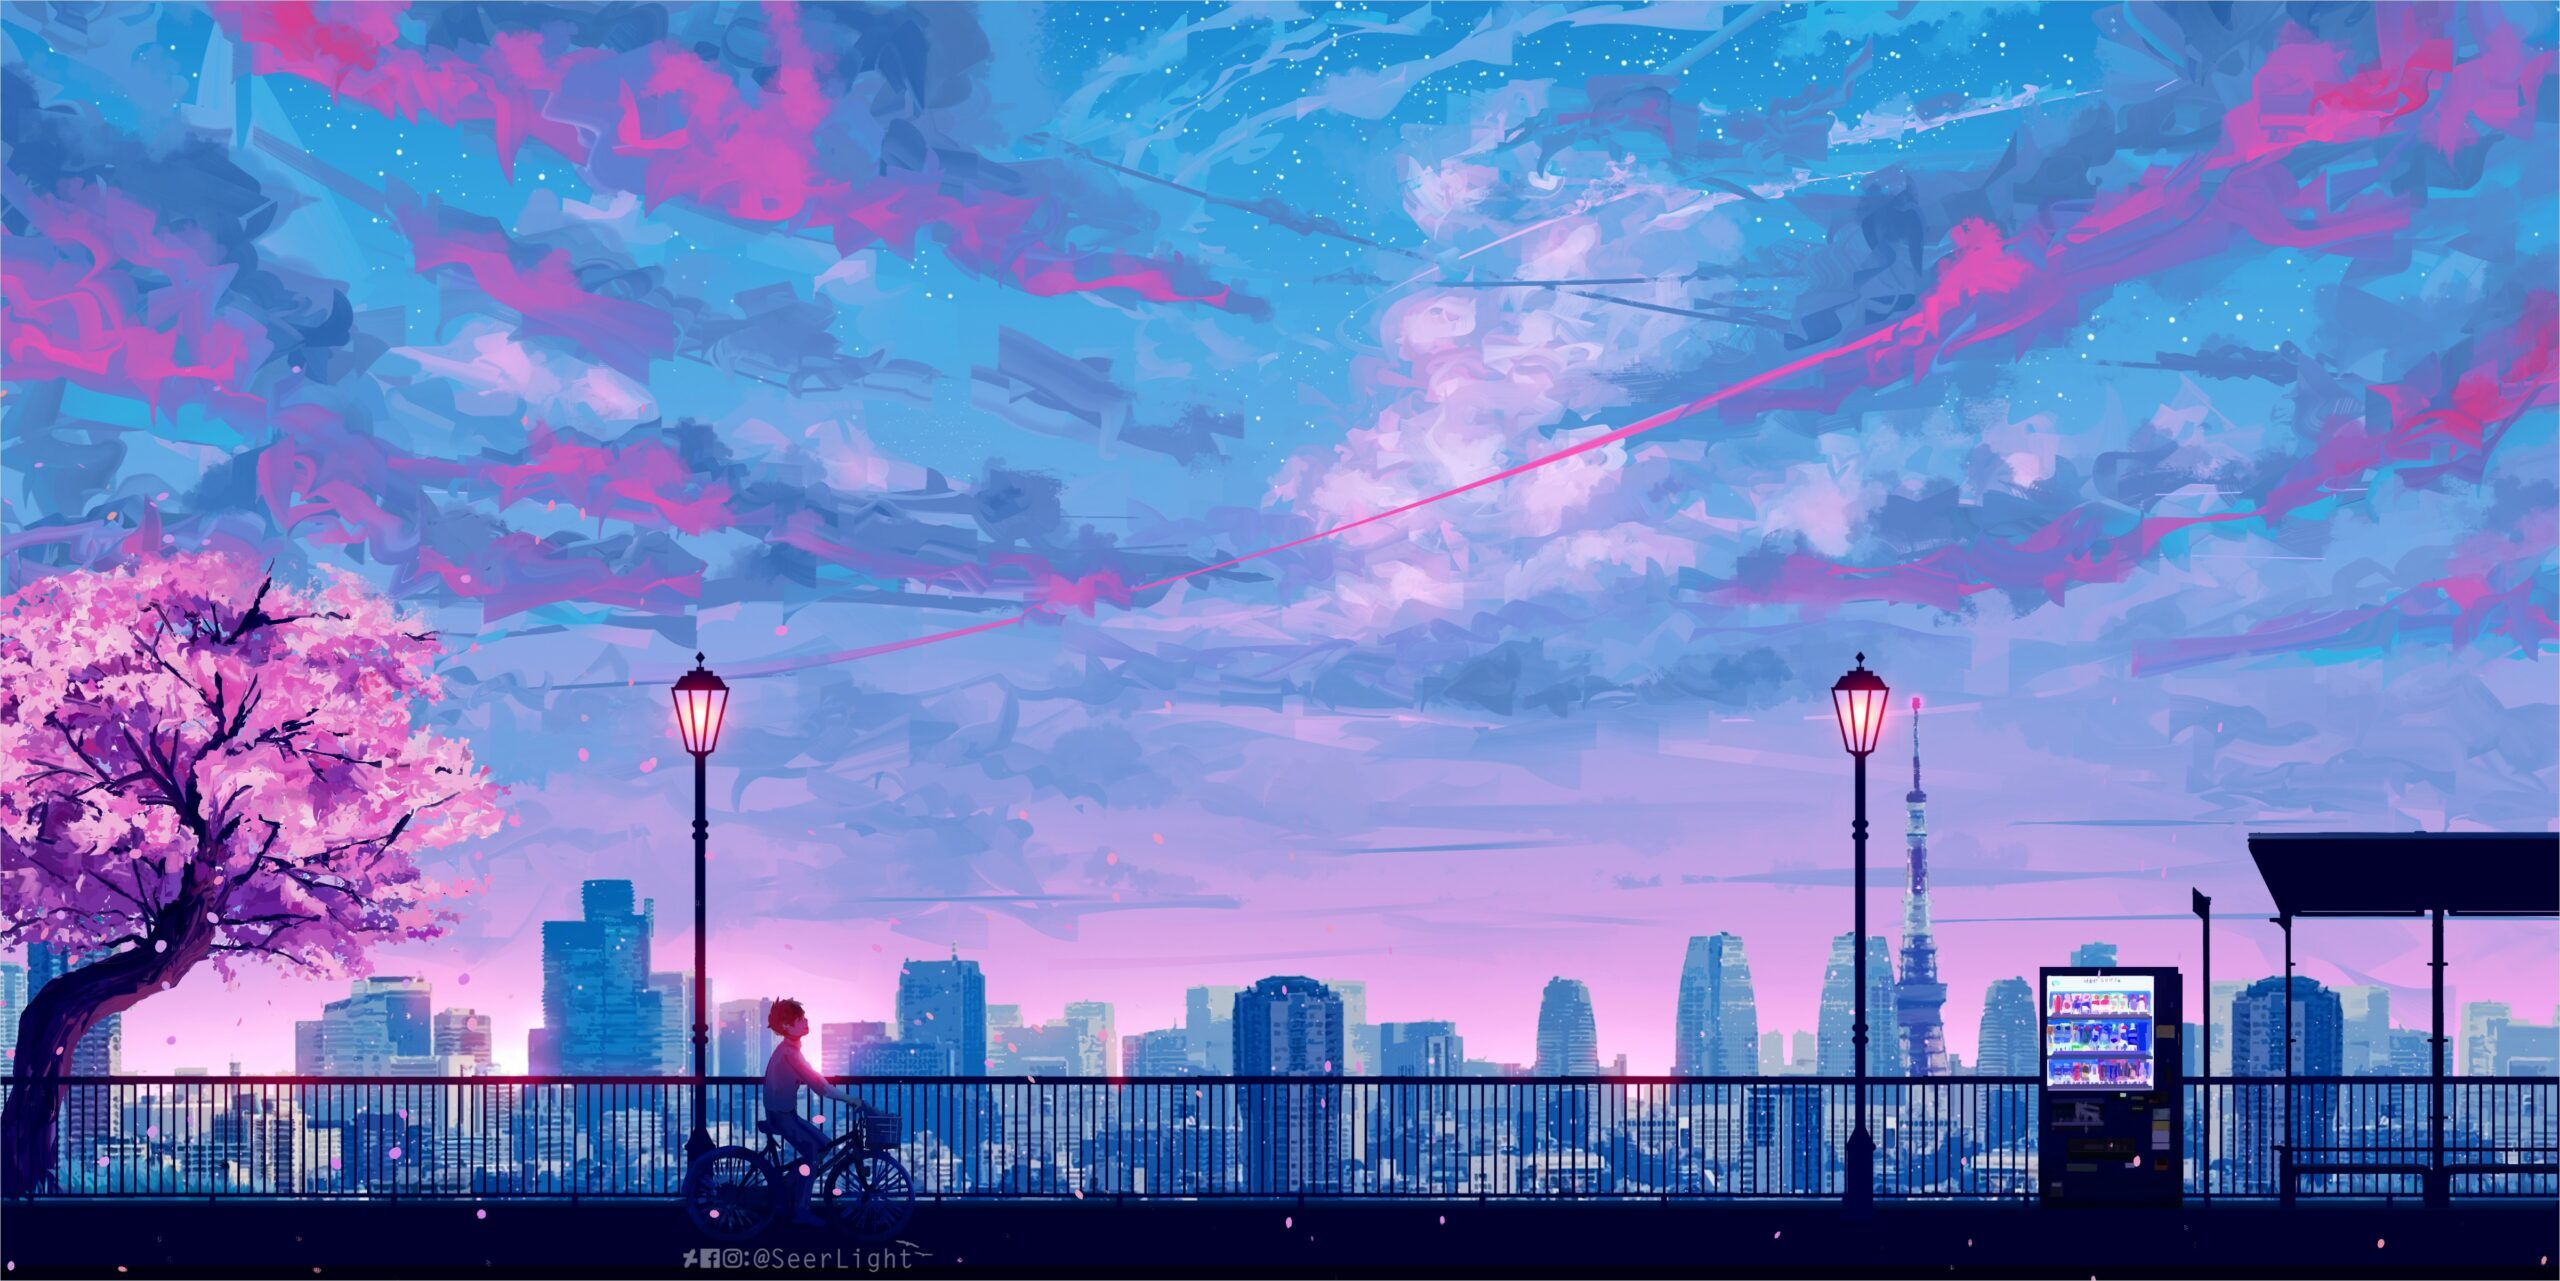 4k Anime Landscape Wallpapers In 2020 Aesthetic Desktop Wallpaper Scenery Wallpaper Desktop Wallpaper Art